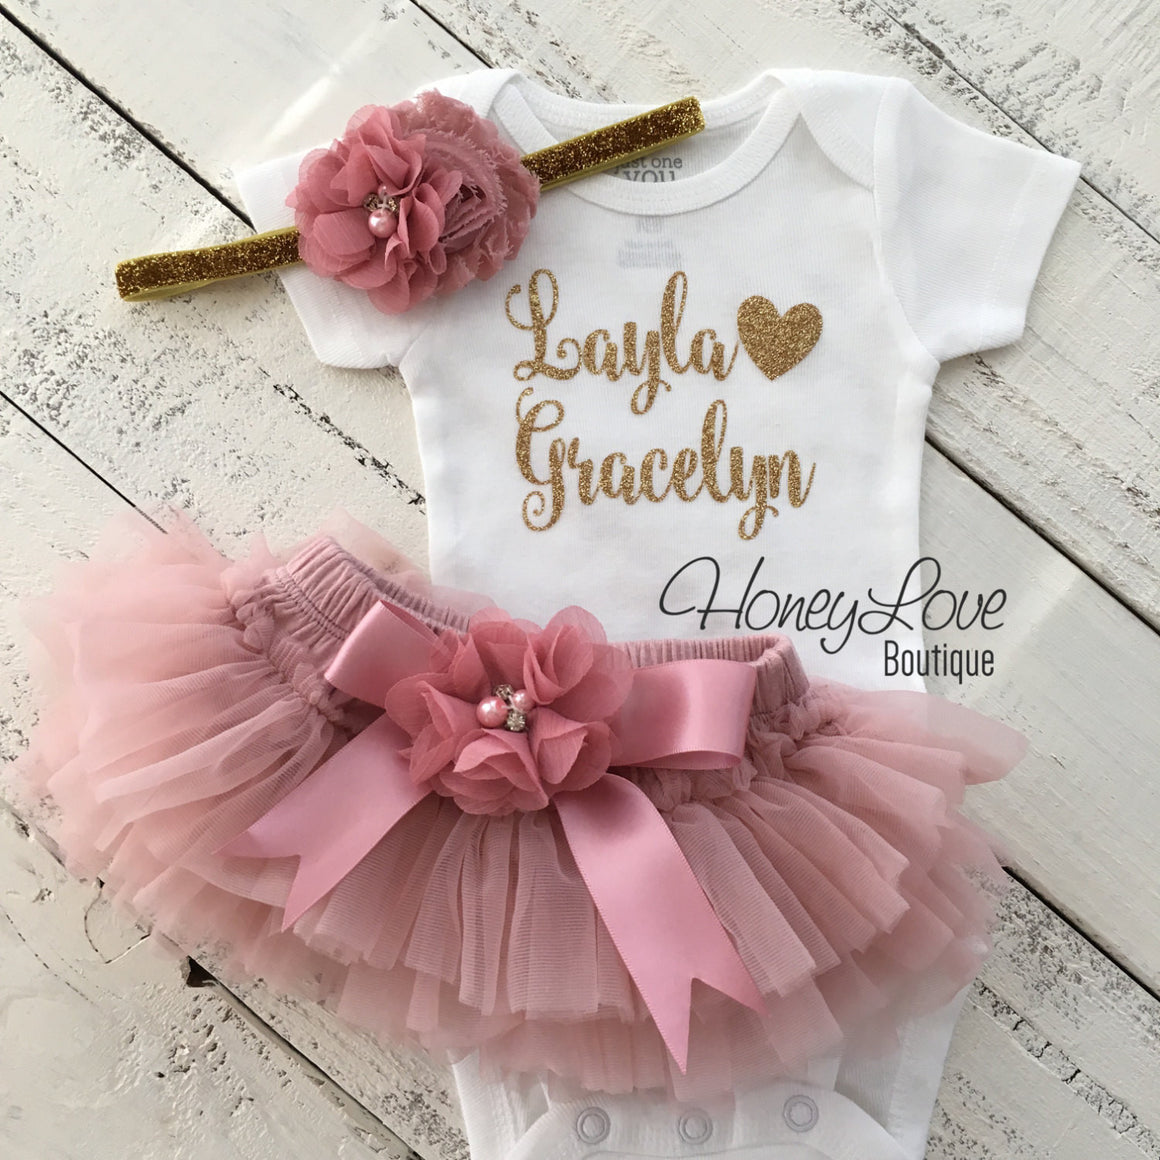 PERSONALIZED Name Outfit - Gold Glitter and Vintage Pink - Embellished tutu skirt bloomers